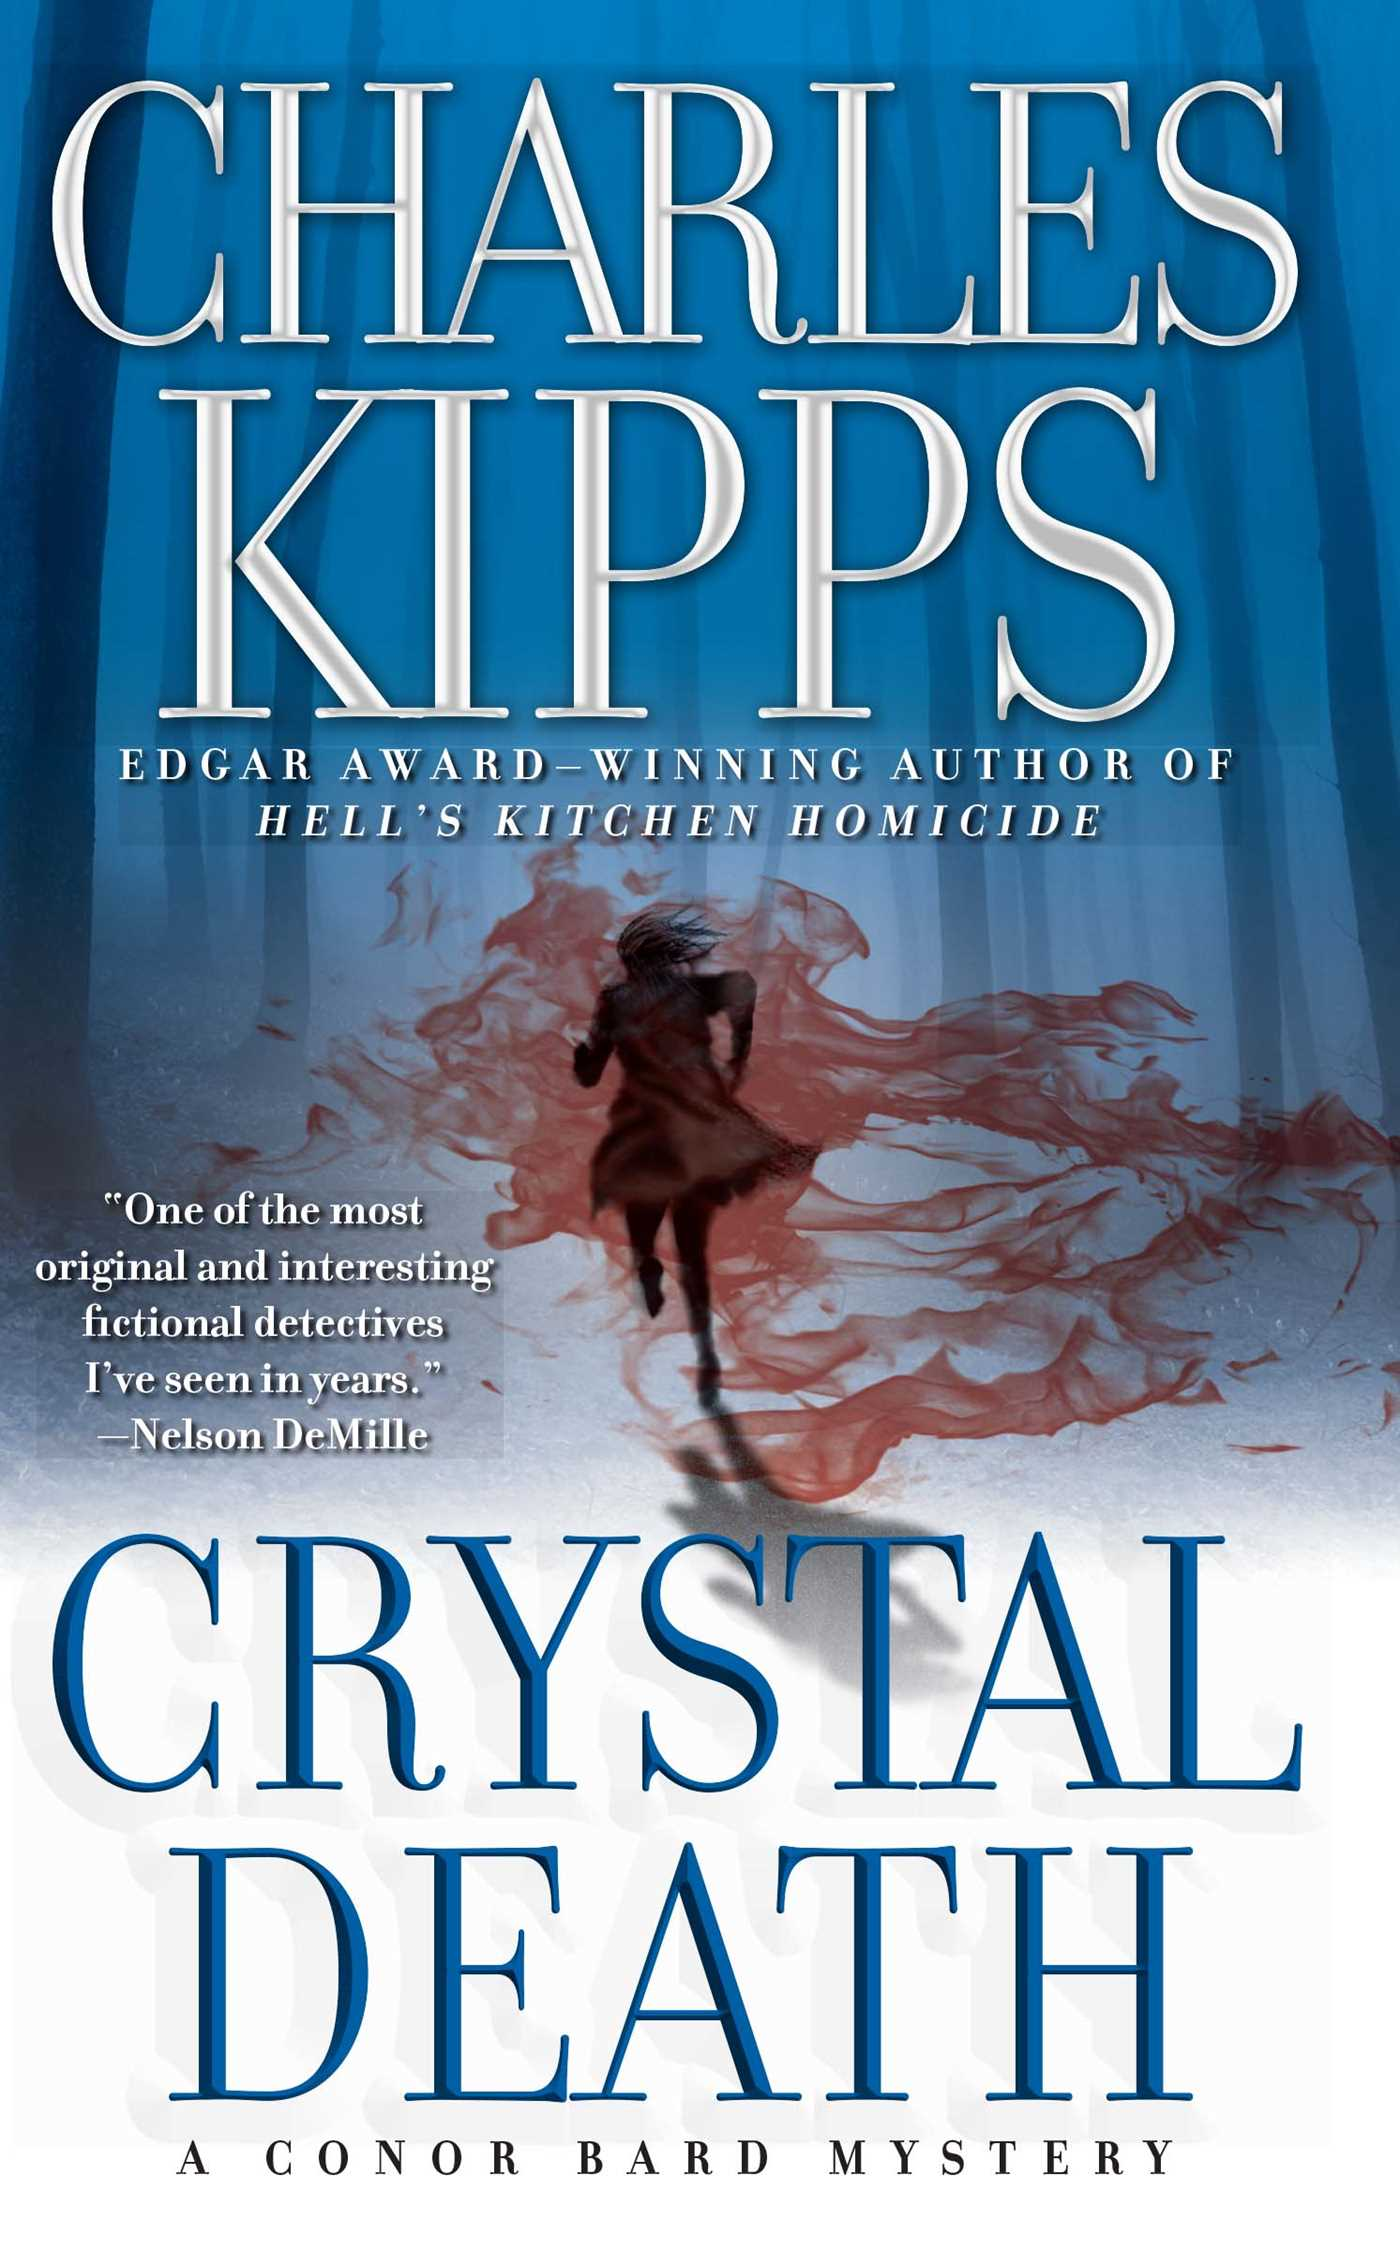 Crystal-death-9781439141168_hr